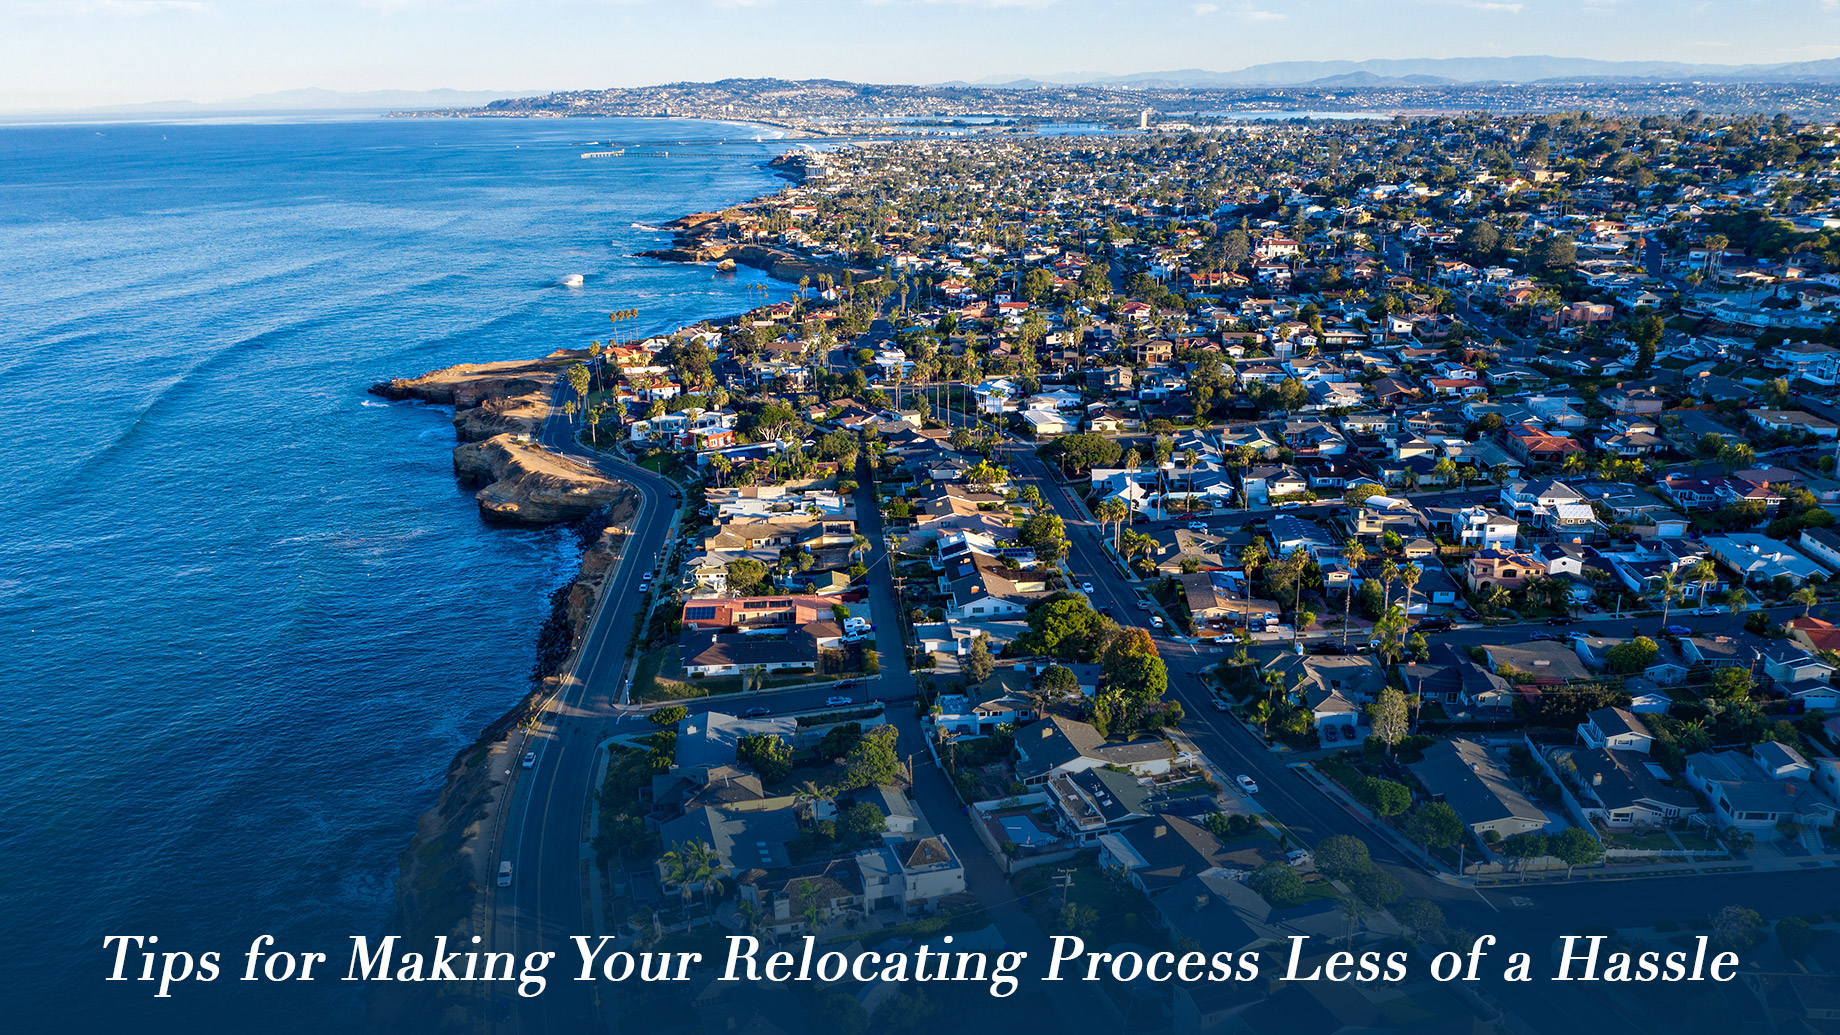 Tips for Making Your Relocating Process Less of a Hassle